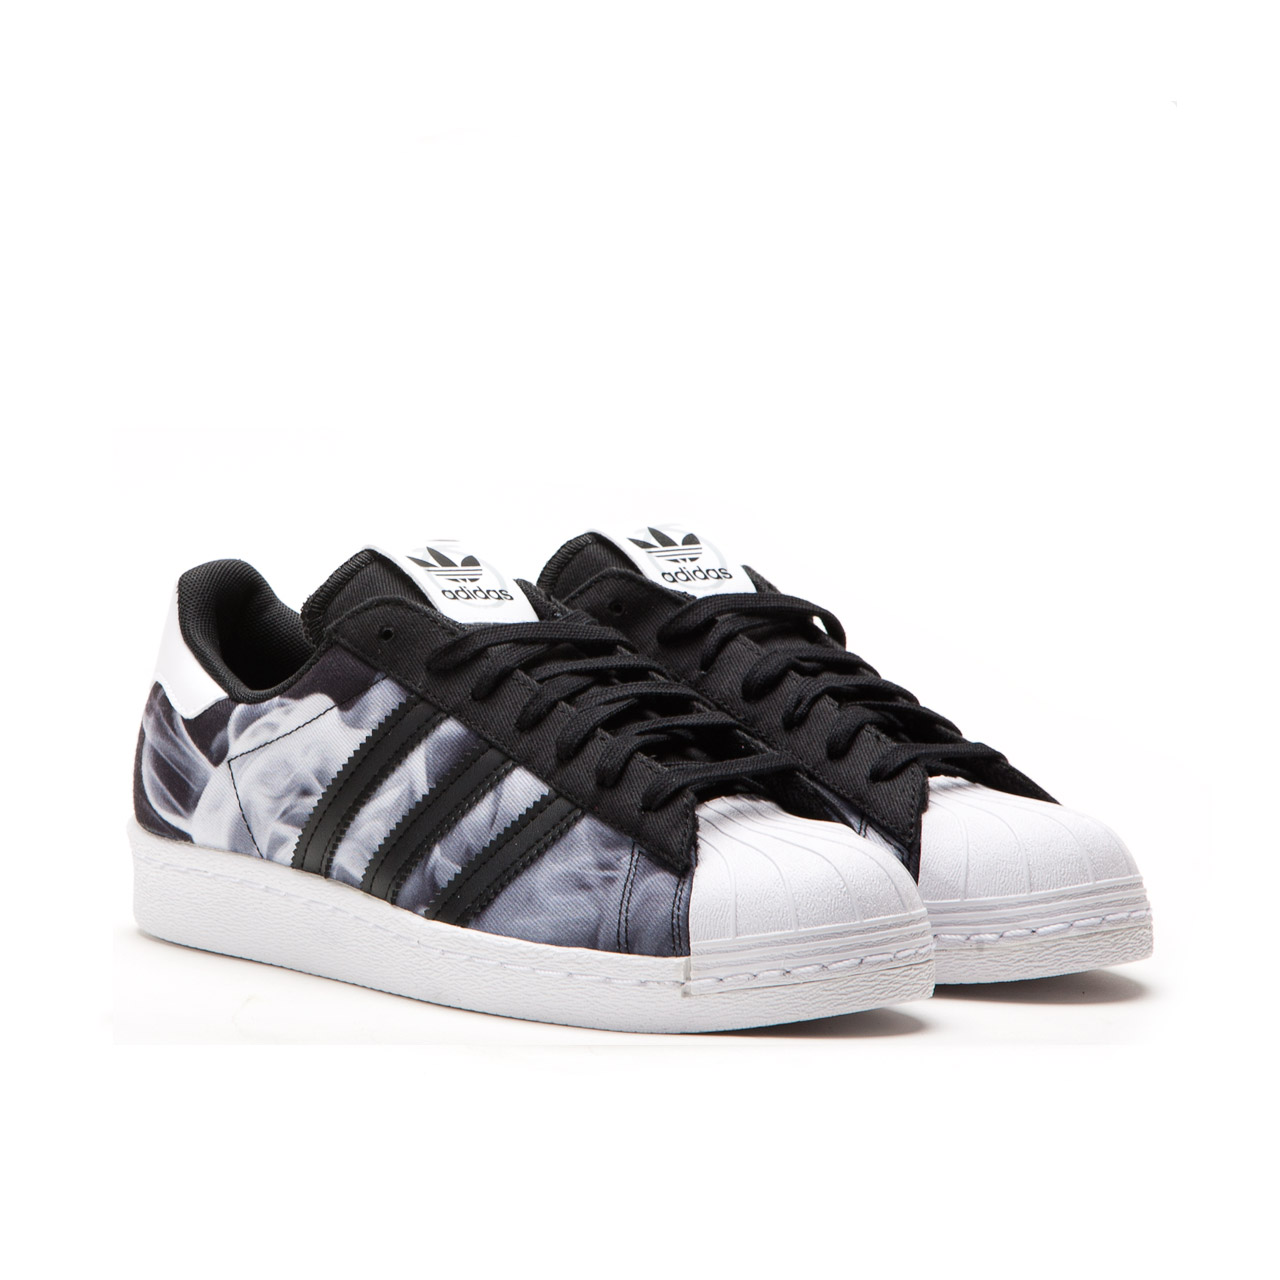 adidas superstar rita ora